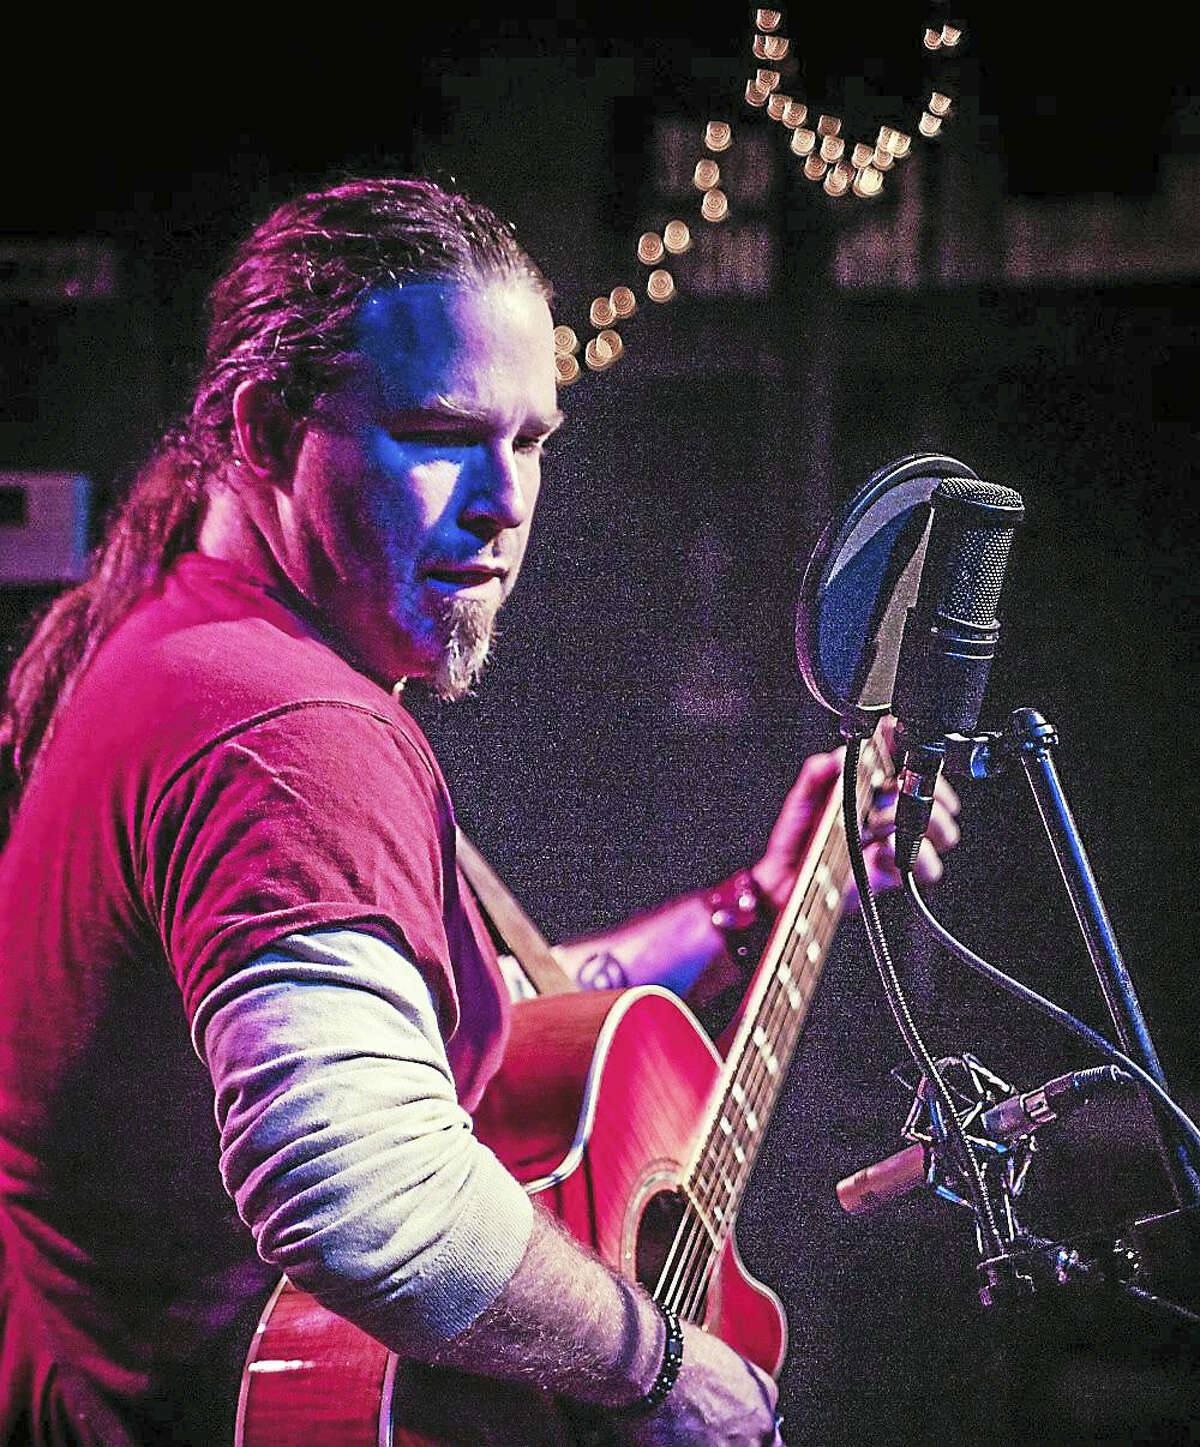 Contributed photoSinger-songwriter Jay Roberts is set to perform Friday night at Coe Memorial Park's Civic Center, along with Brian Dolzani, in the first of four concerts presented by the Parks and recreation department in Torrington. The Winter Showcase Acoustic Concert Series continues weekly until Feb. 10.